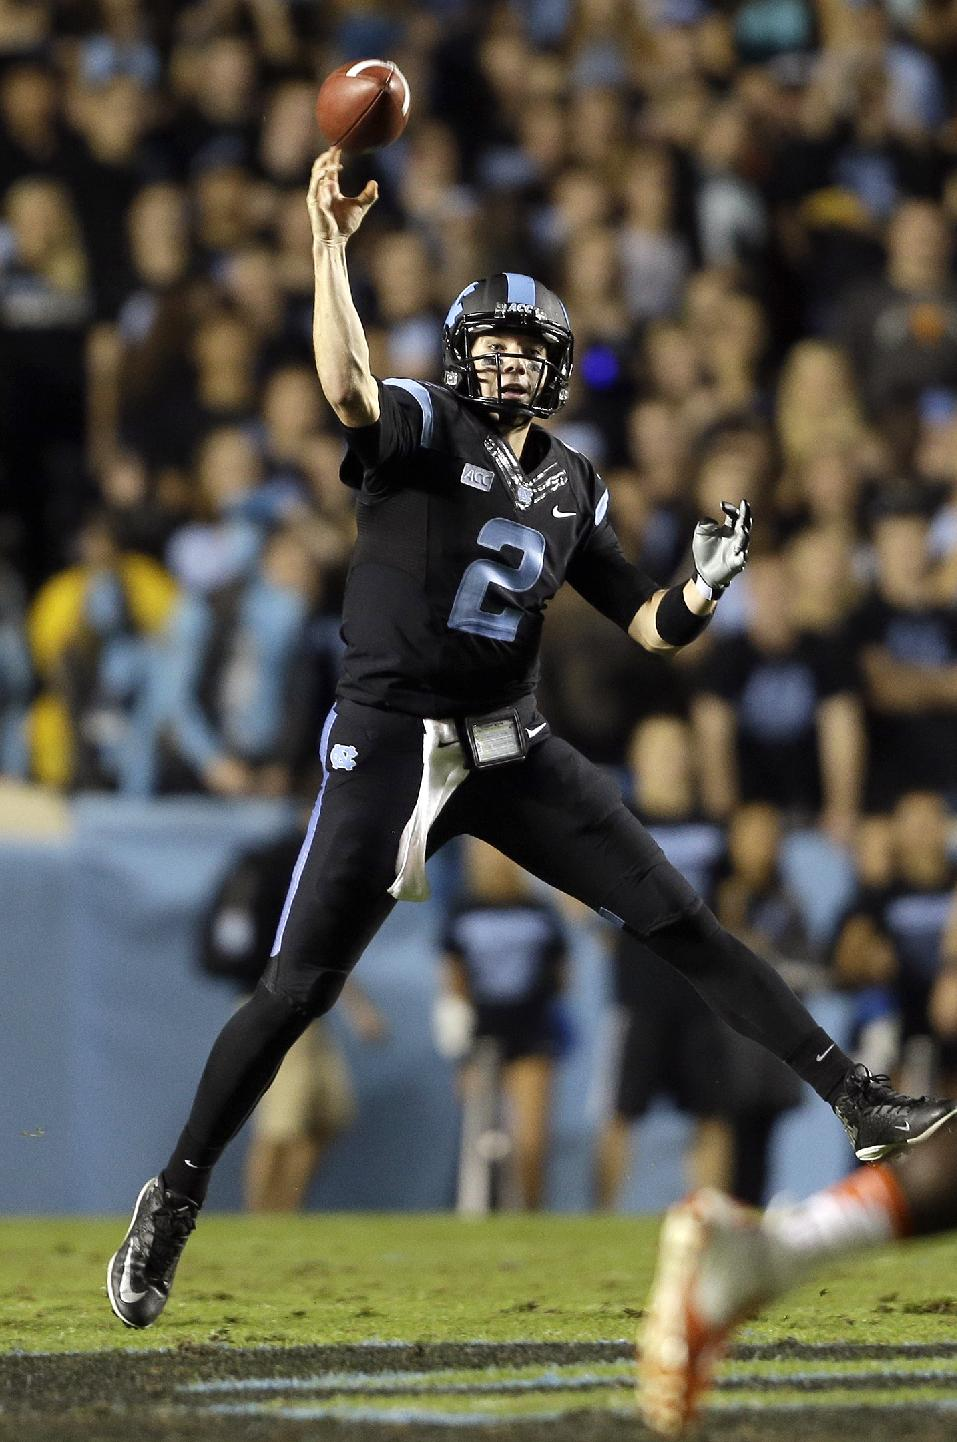 North Carolina quarterback Bryn Renner (2) passes against Miami during the first half of an NCAA college football game in Chapel Hill, N.C., Thursday, Oct. 17, 2013